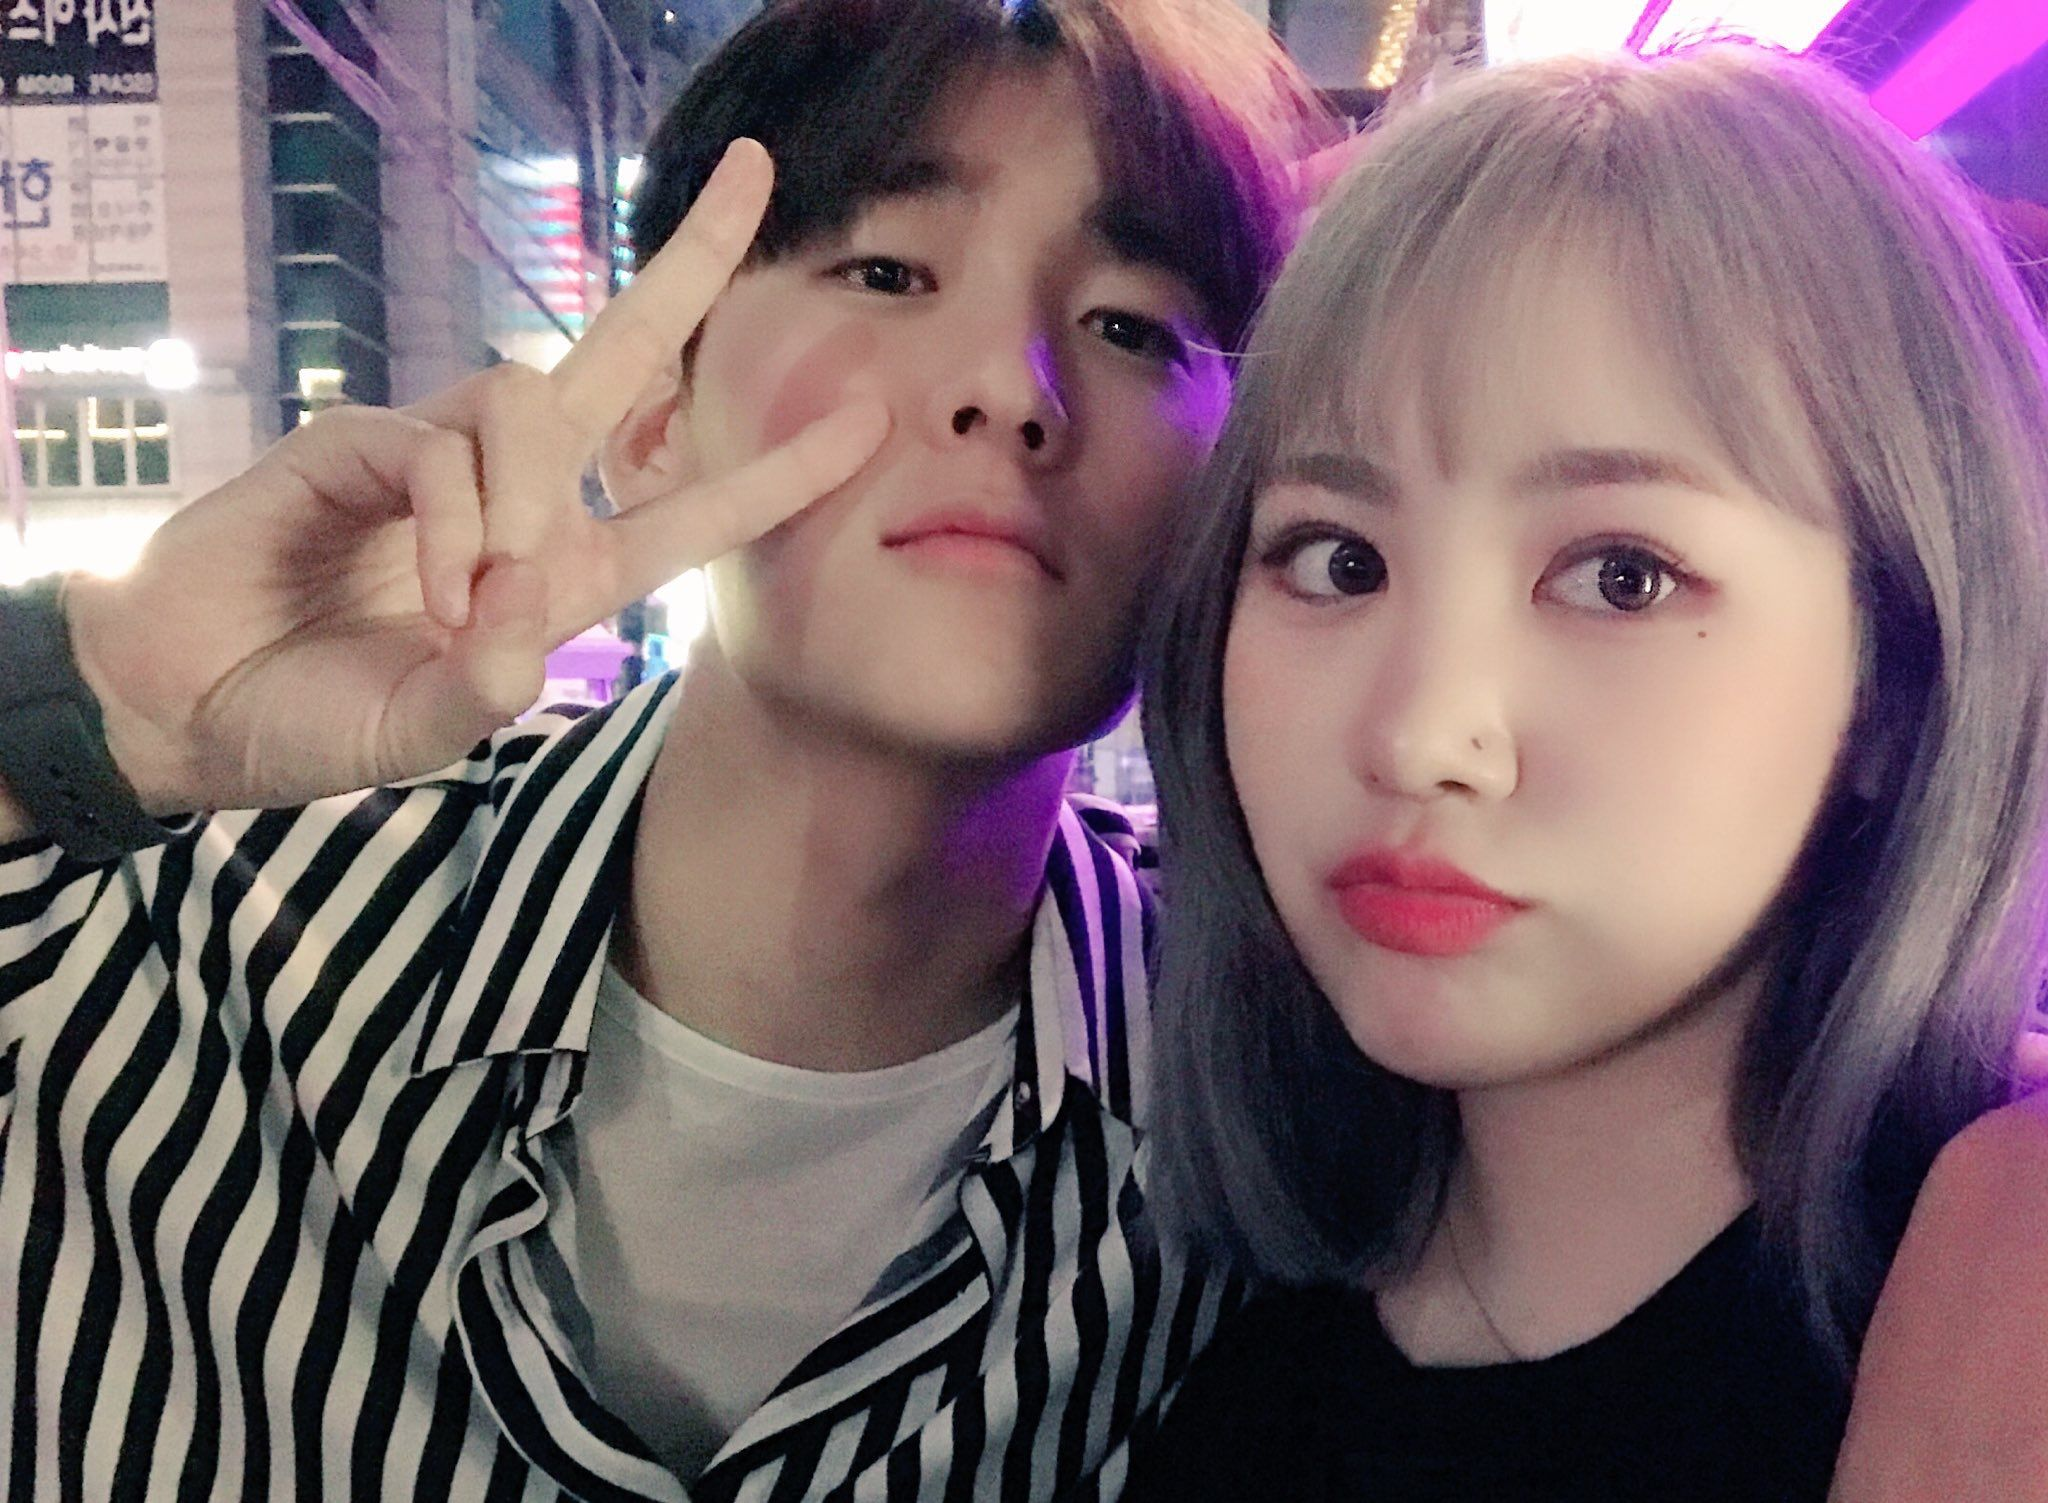 Kevin and Jimin